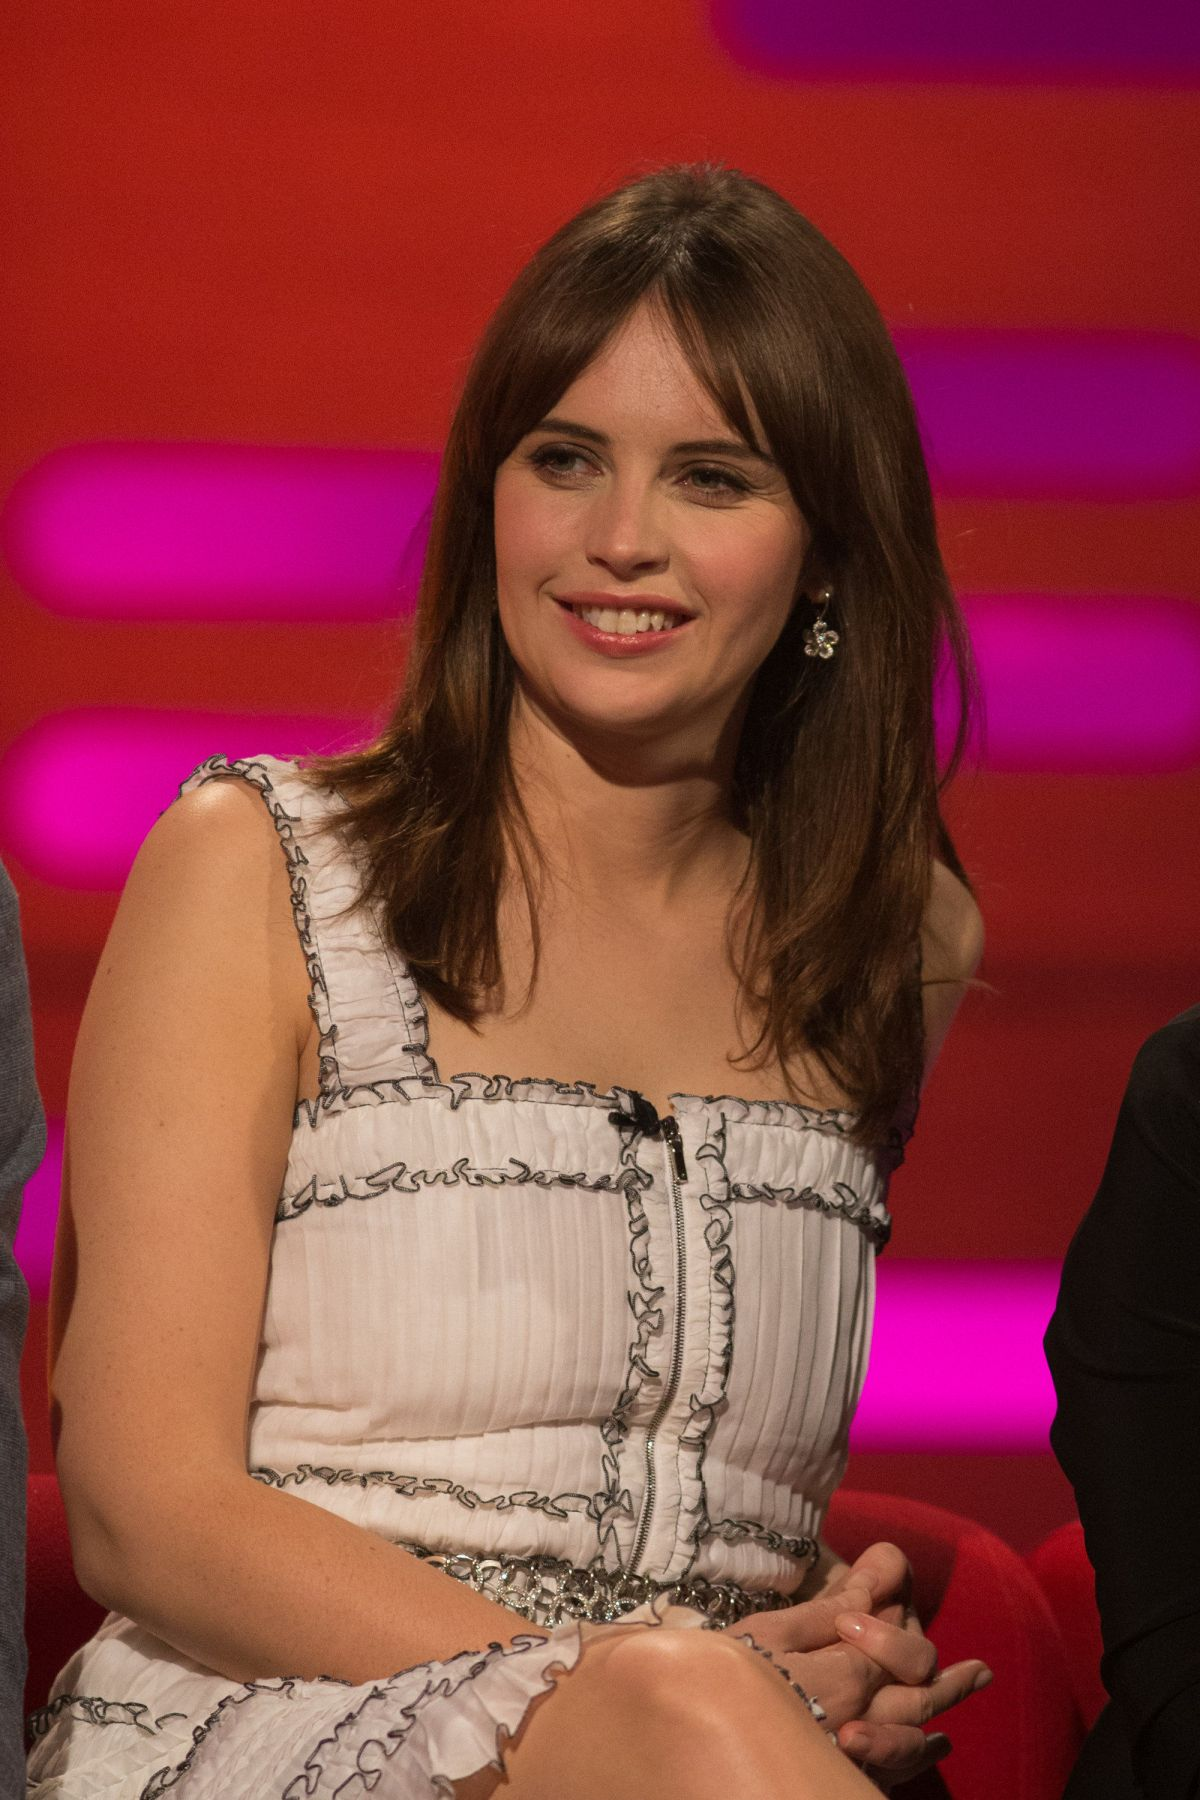 FELICITY JONES at The Graham Norton Show in London 12/15/2016